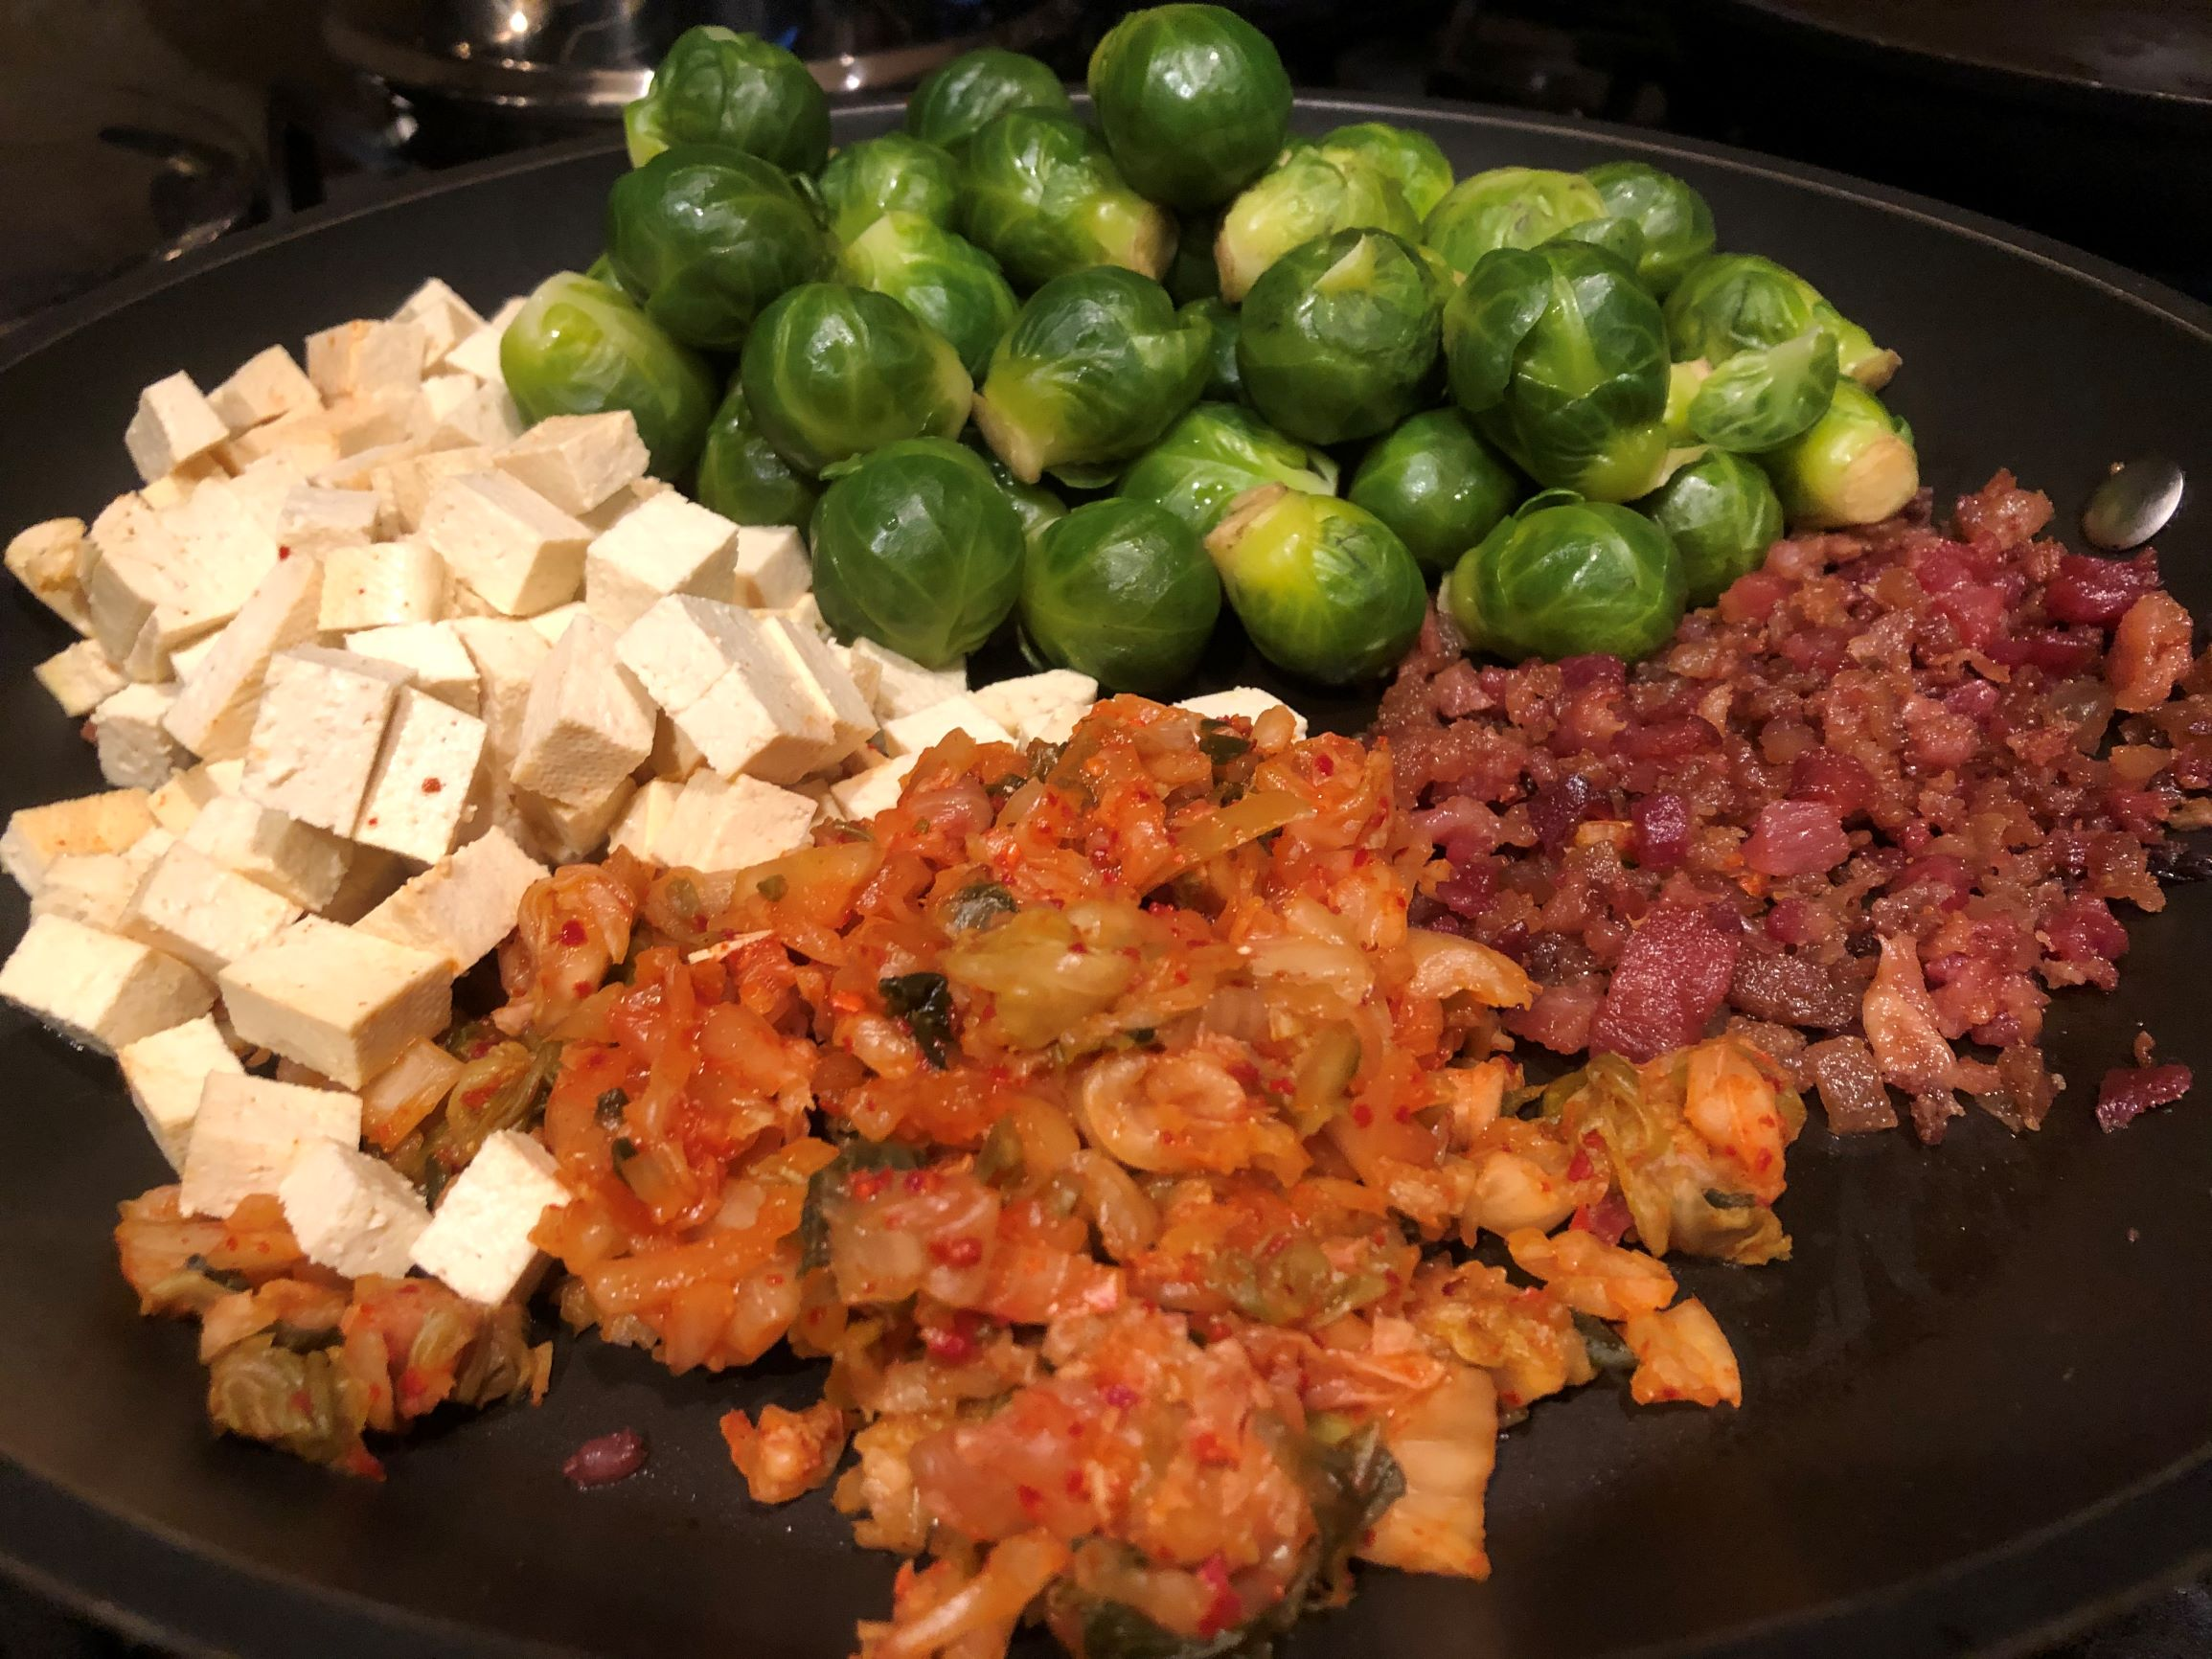 Components of Korean Inspired Brussel Sprouts